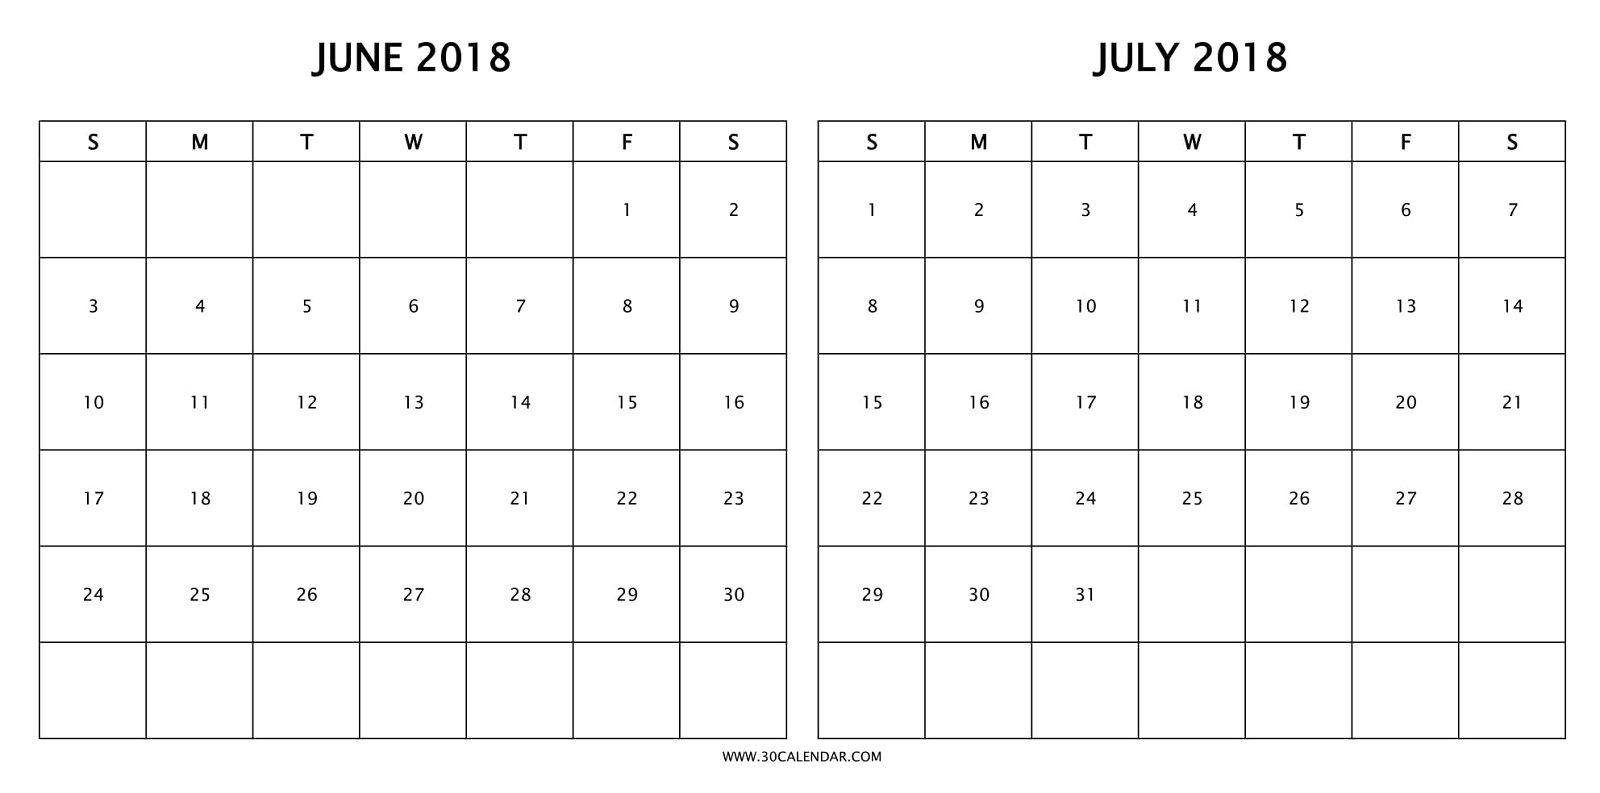 Print Free Two Month Calendar 2018 June July With Holidays | 2018 regarding June And July Calendar Month